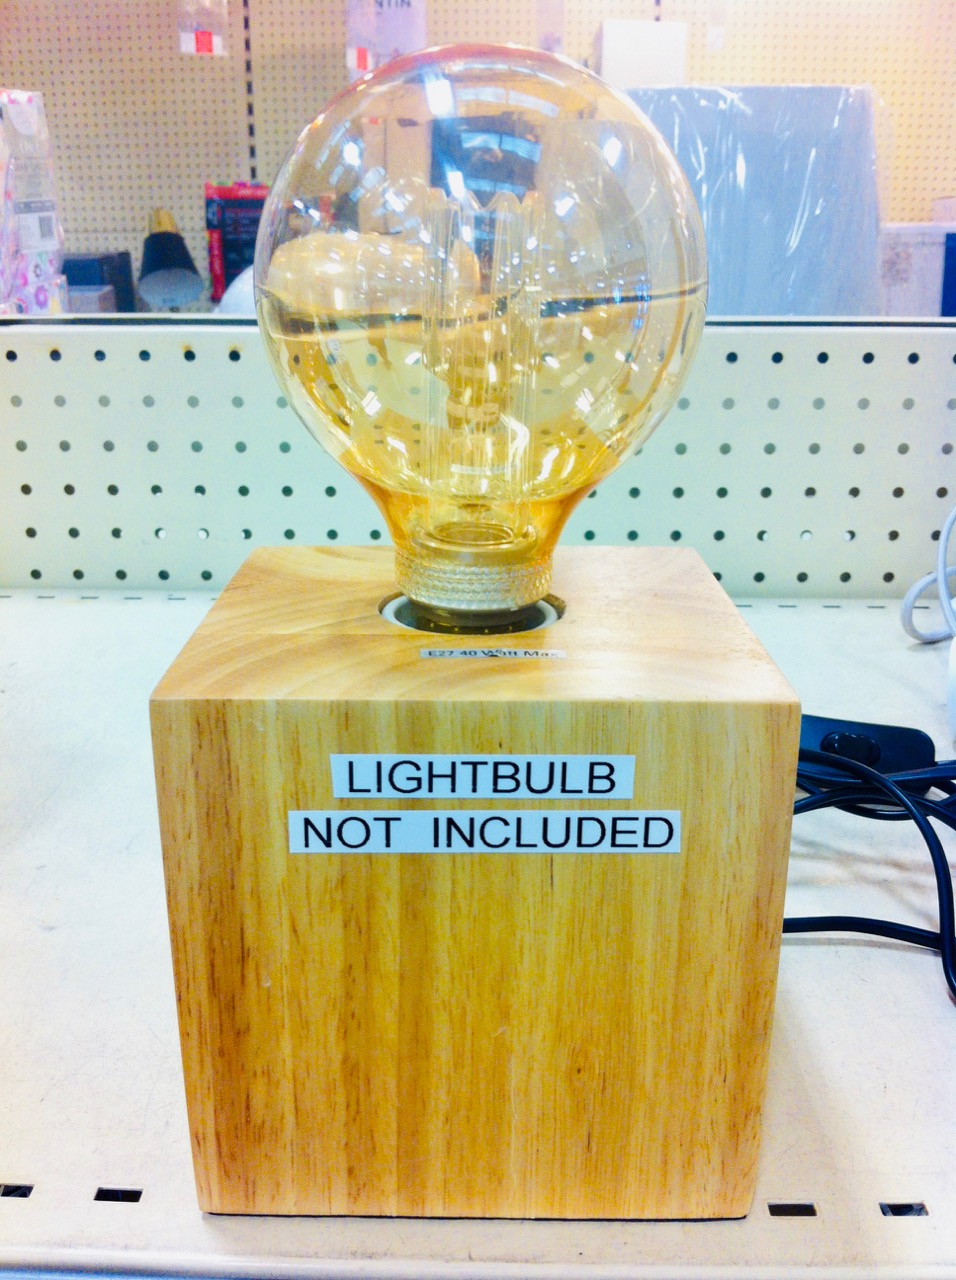 Lightbulb not included